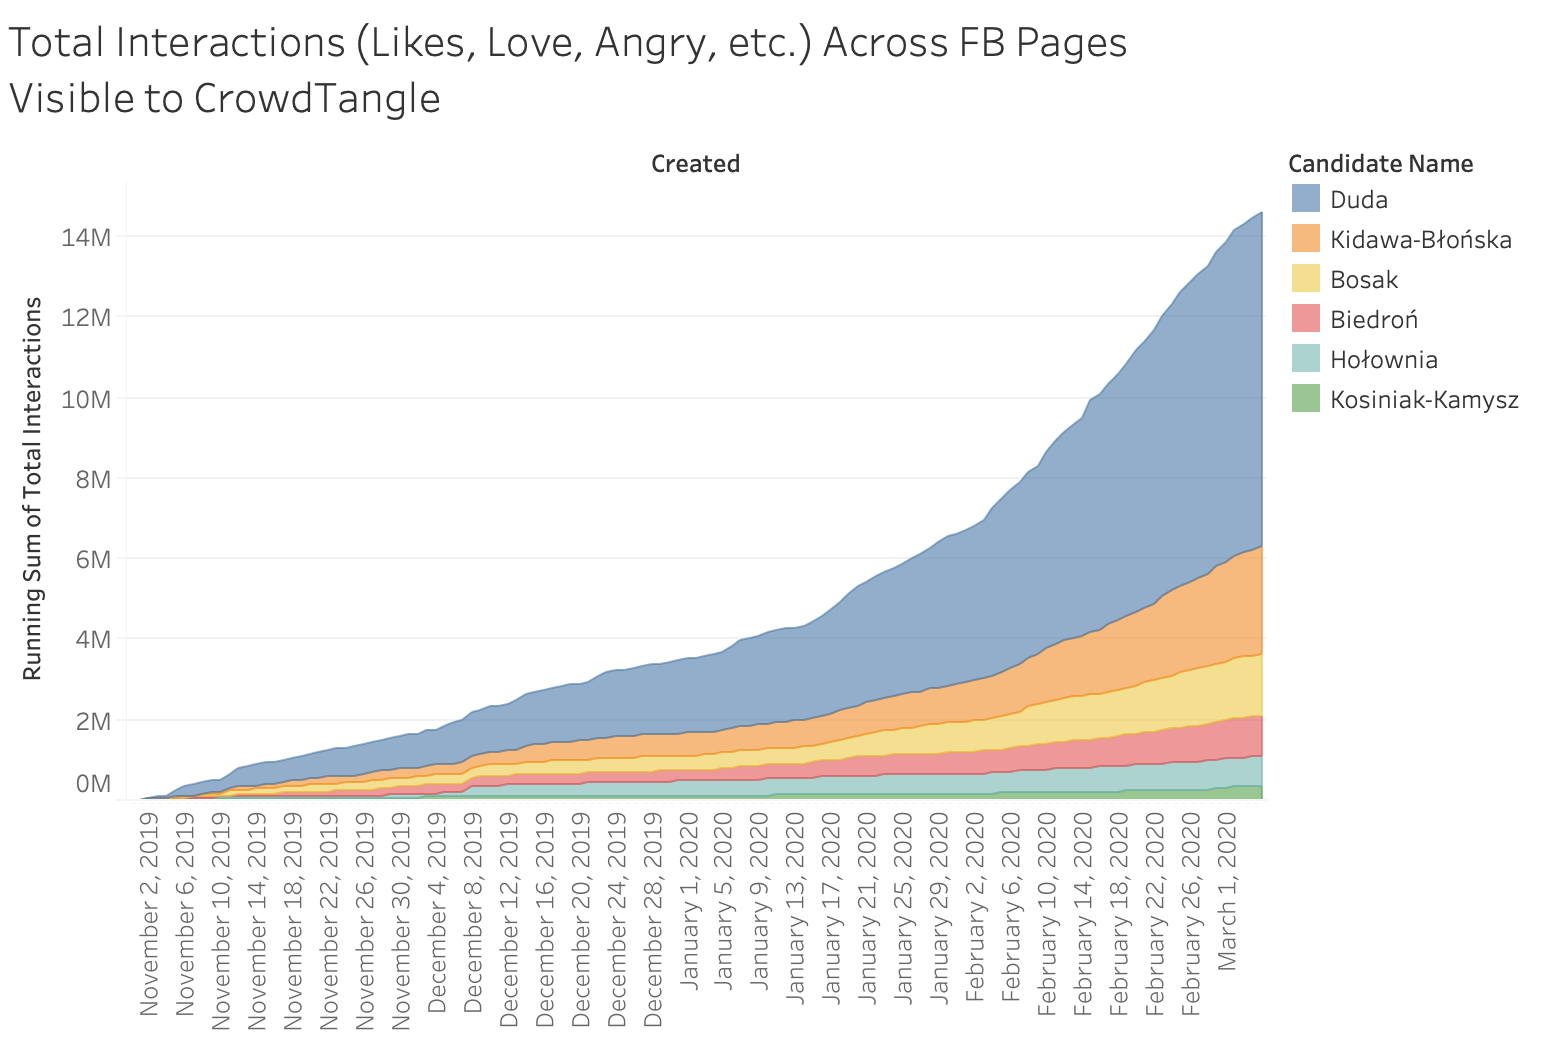 Running sum of interactions on Posts referring to candidates' names from Nov 1, 2019 to March 5, 2020 across all Pages and Groups visible to CrowdTangle